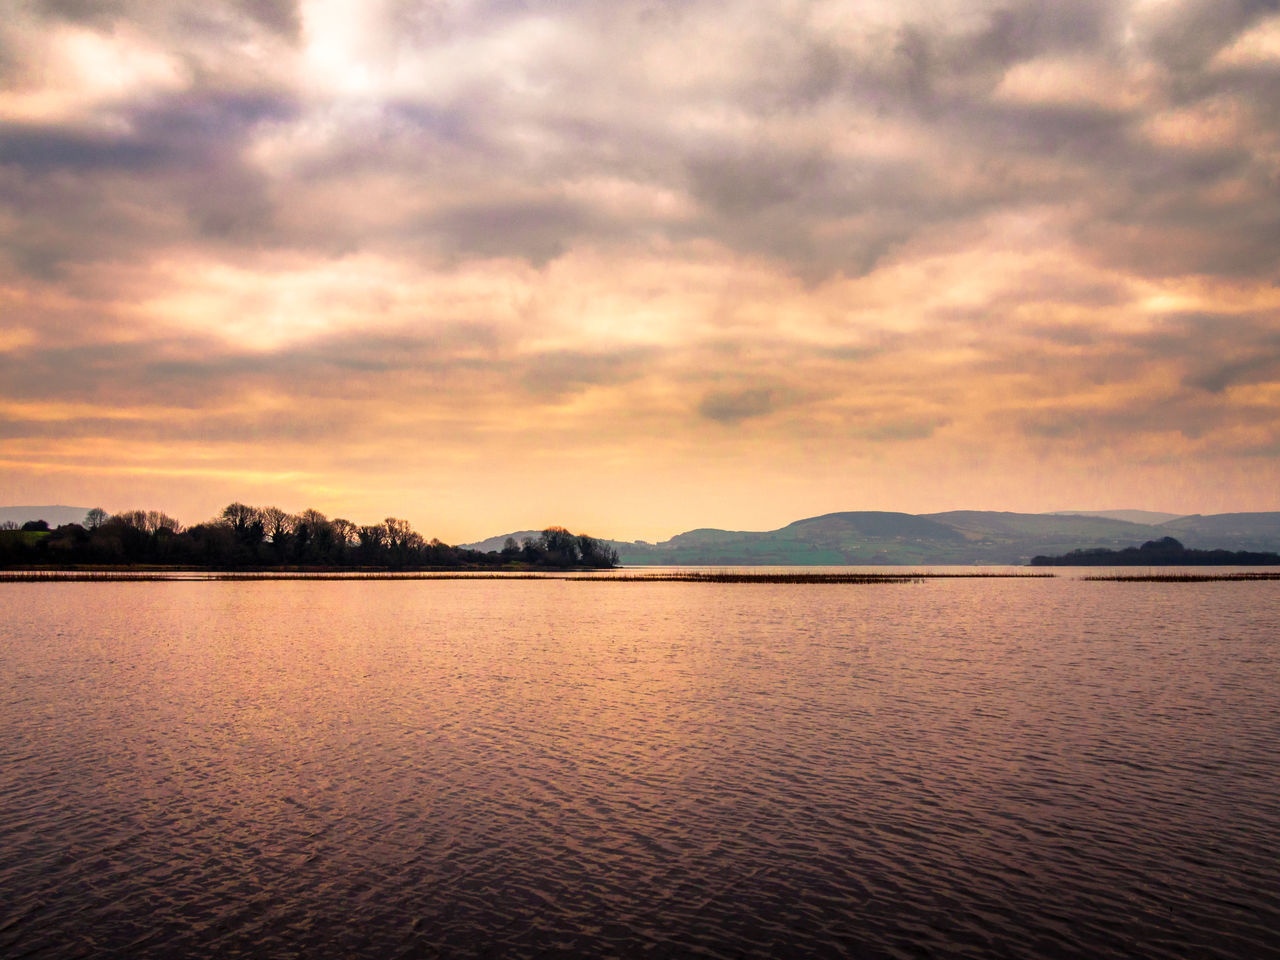 Inis Cealtra Lough Derg Ireland Sunset Reflection Nature Sky Beauty In Nature Scenics Water Landscape Outdoors No People Lake Cloud - Sky Tranquility Landscapes Lough Trees